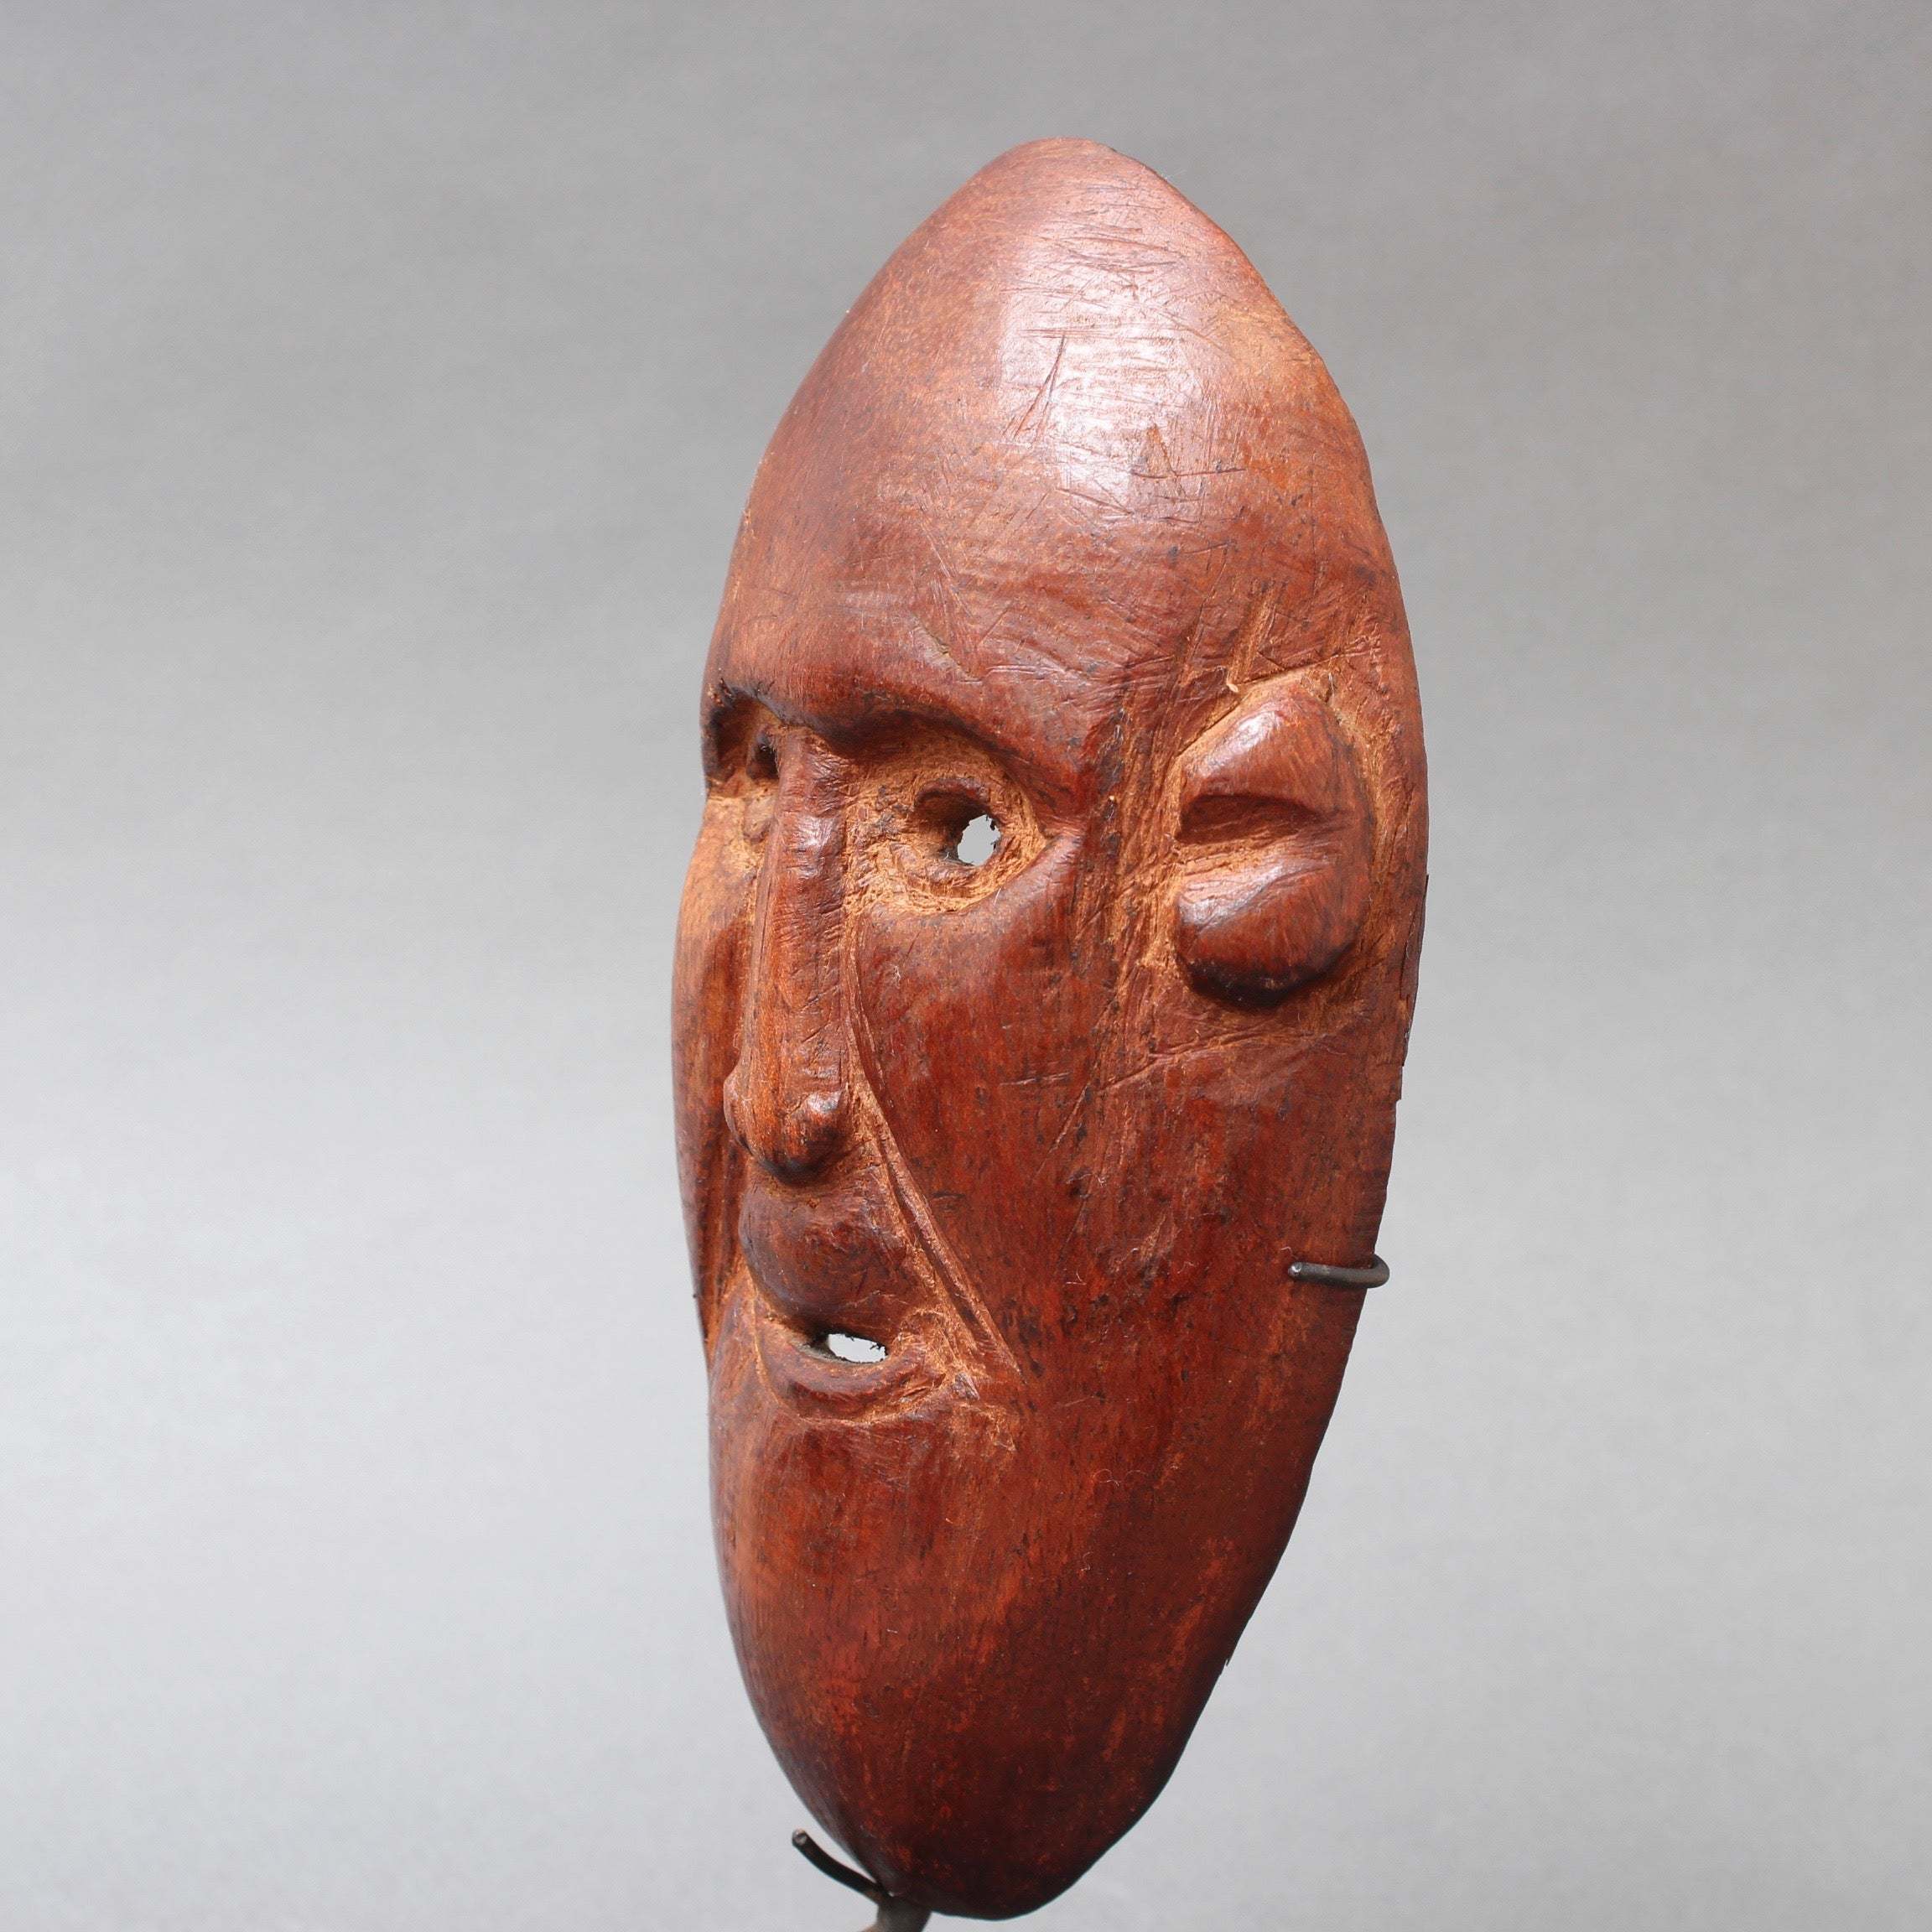 20th Century Sculpted Wooden Traditional Mask from Timor Island, Indonesia